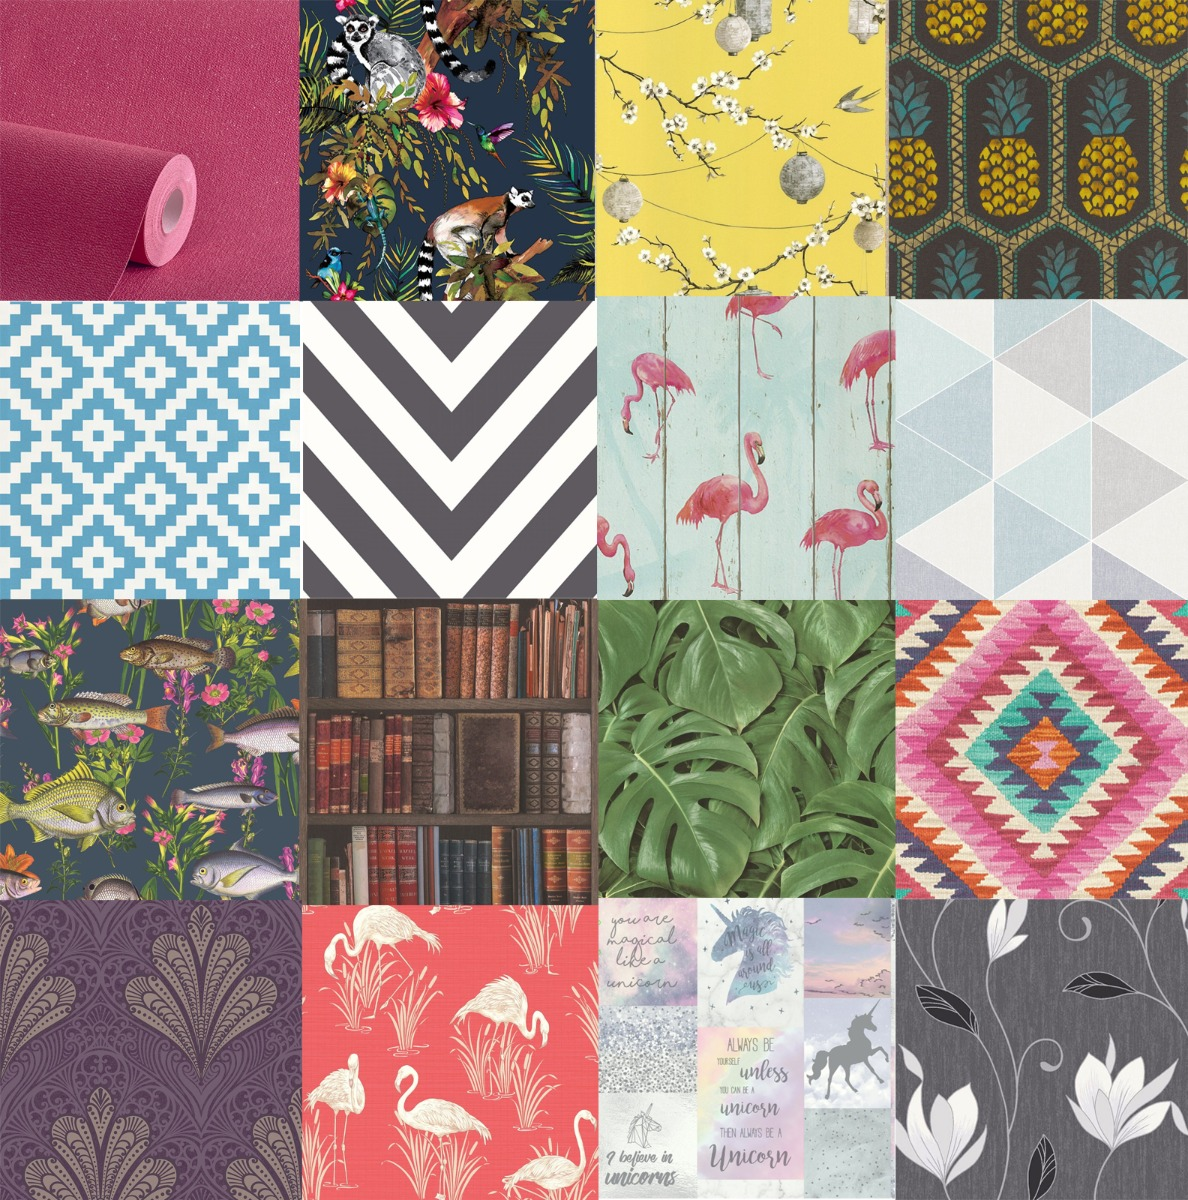 Wallpaper Samples for Upcycling